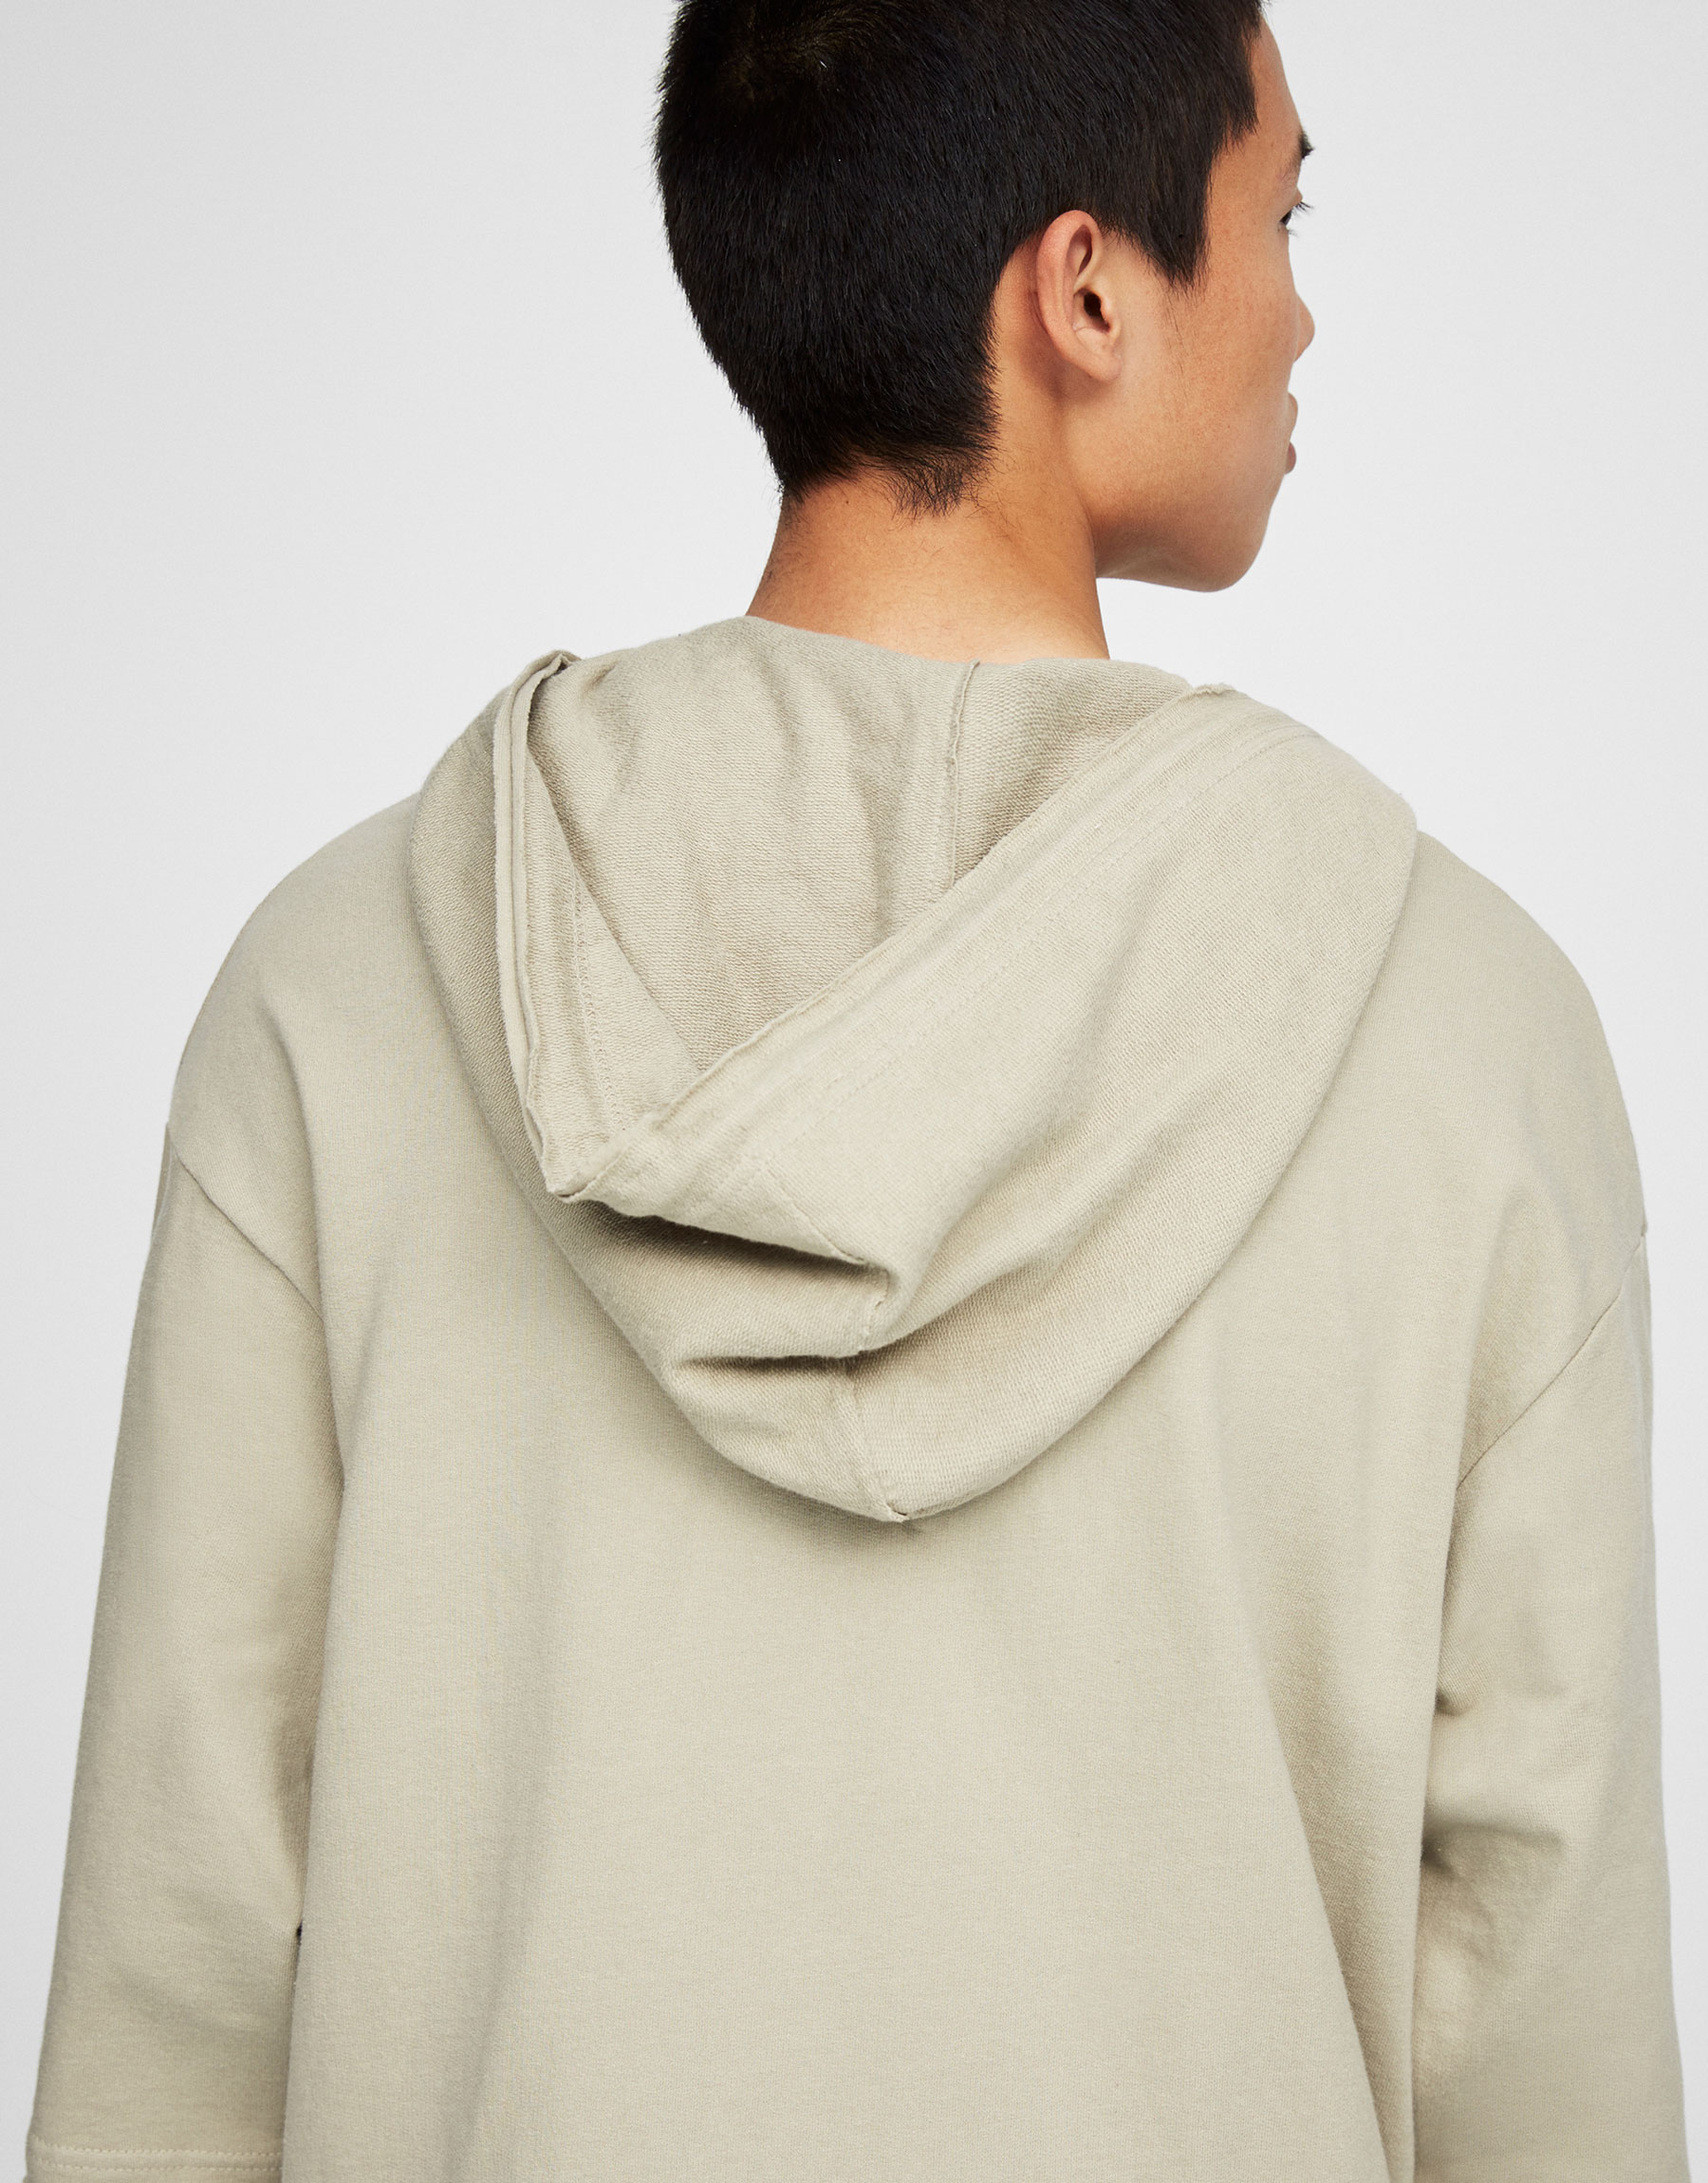 Hooded sweatshirt with 3/4 length sleeves